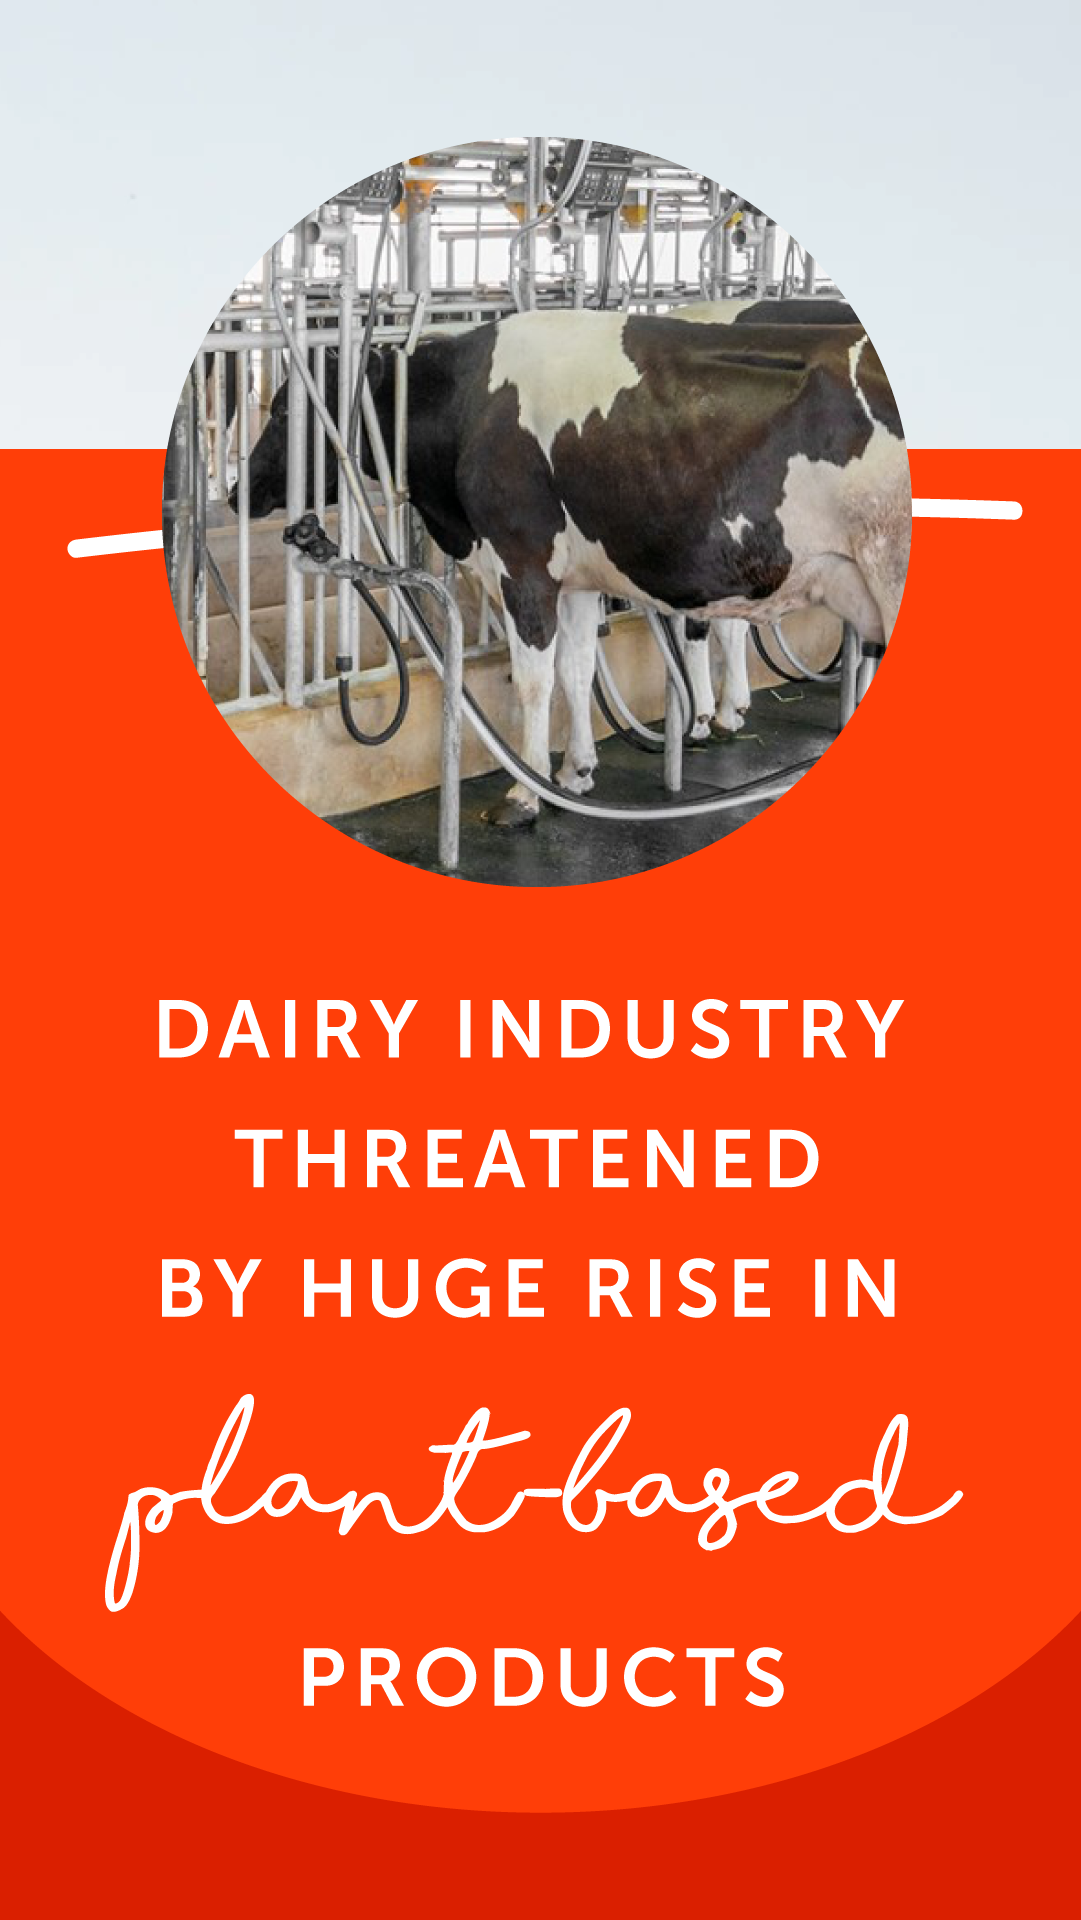 Dairy Industry Threatened by Huge Rise in PlantBased